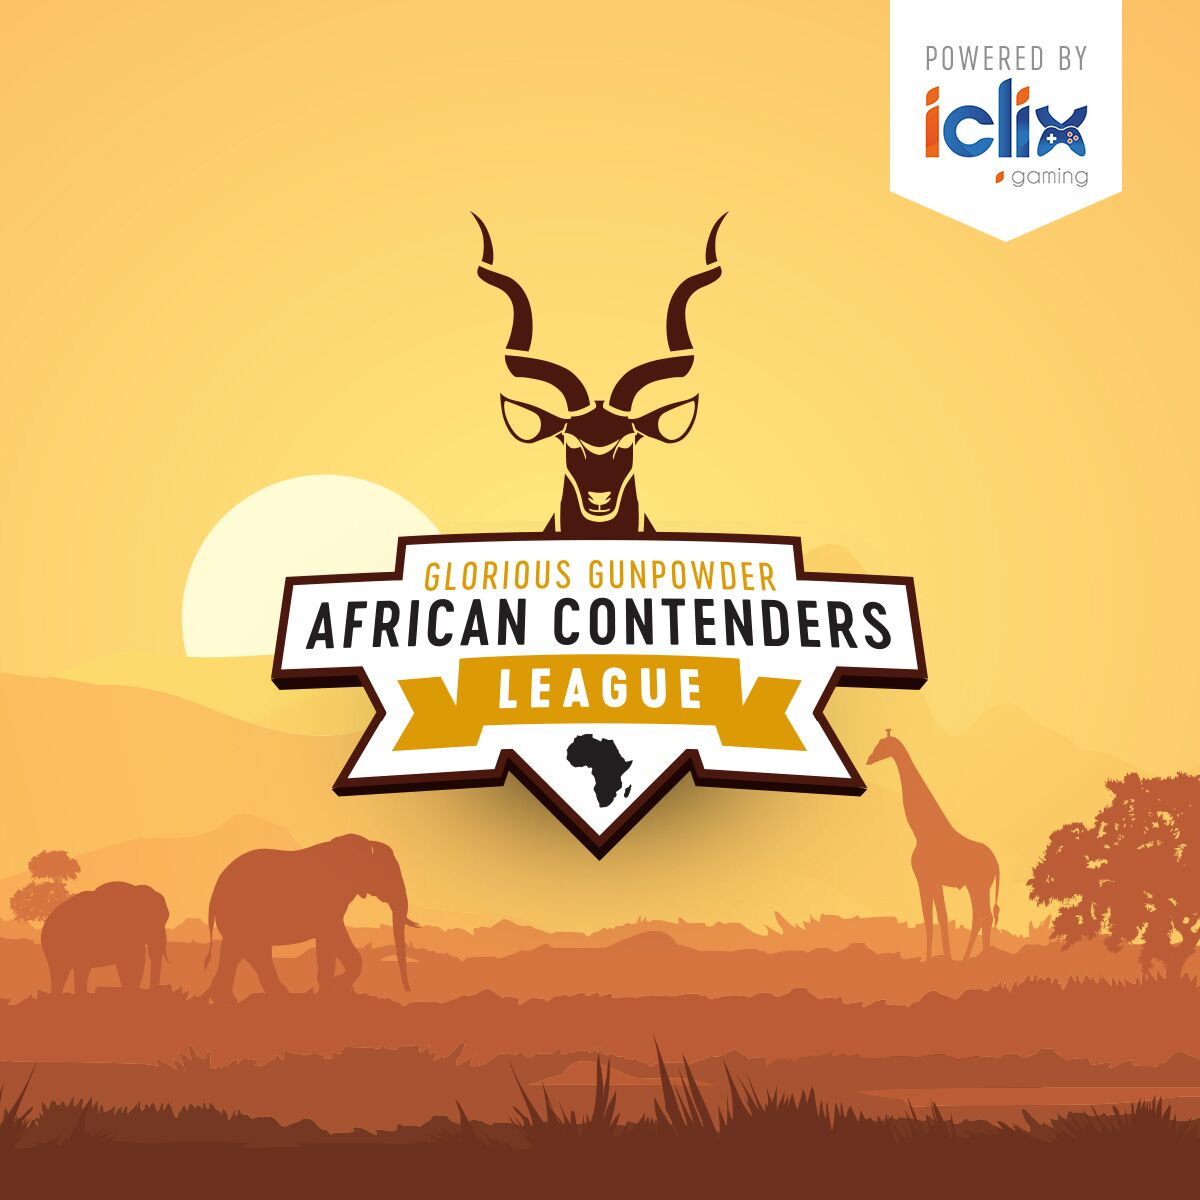 African PUBG teams compete in the Glorious Gunpowder African Contenders Finals this Saturday